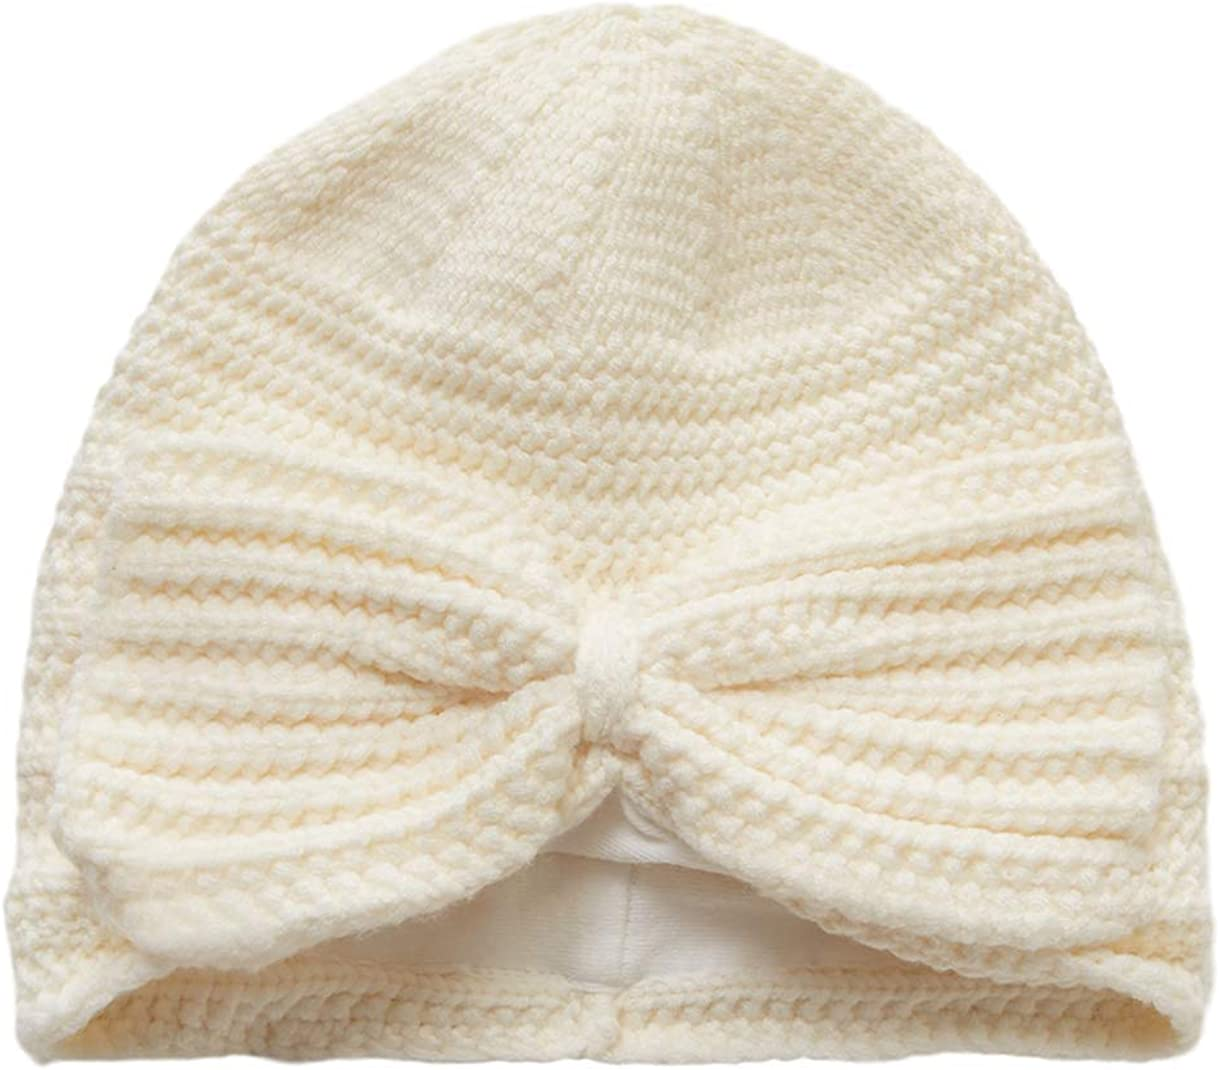 Winter Warm Knitted Baby Hat for Girls Cotton Lined Newborn Infant Girls Hat with Cute Bow Or Rose